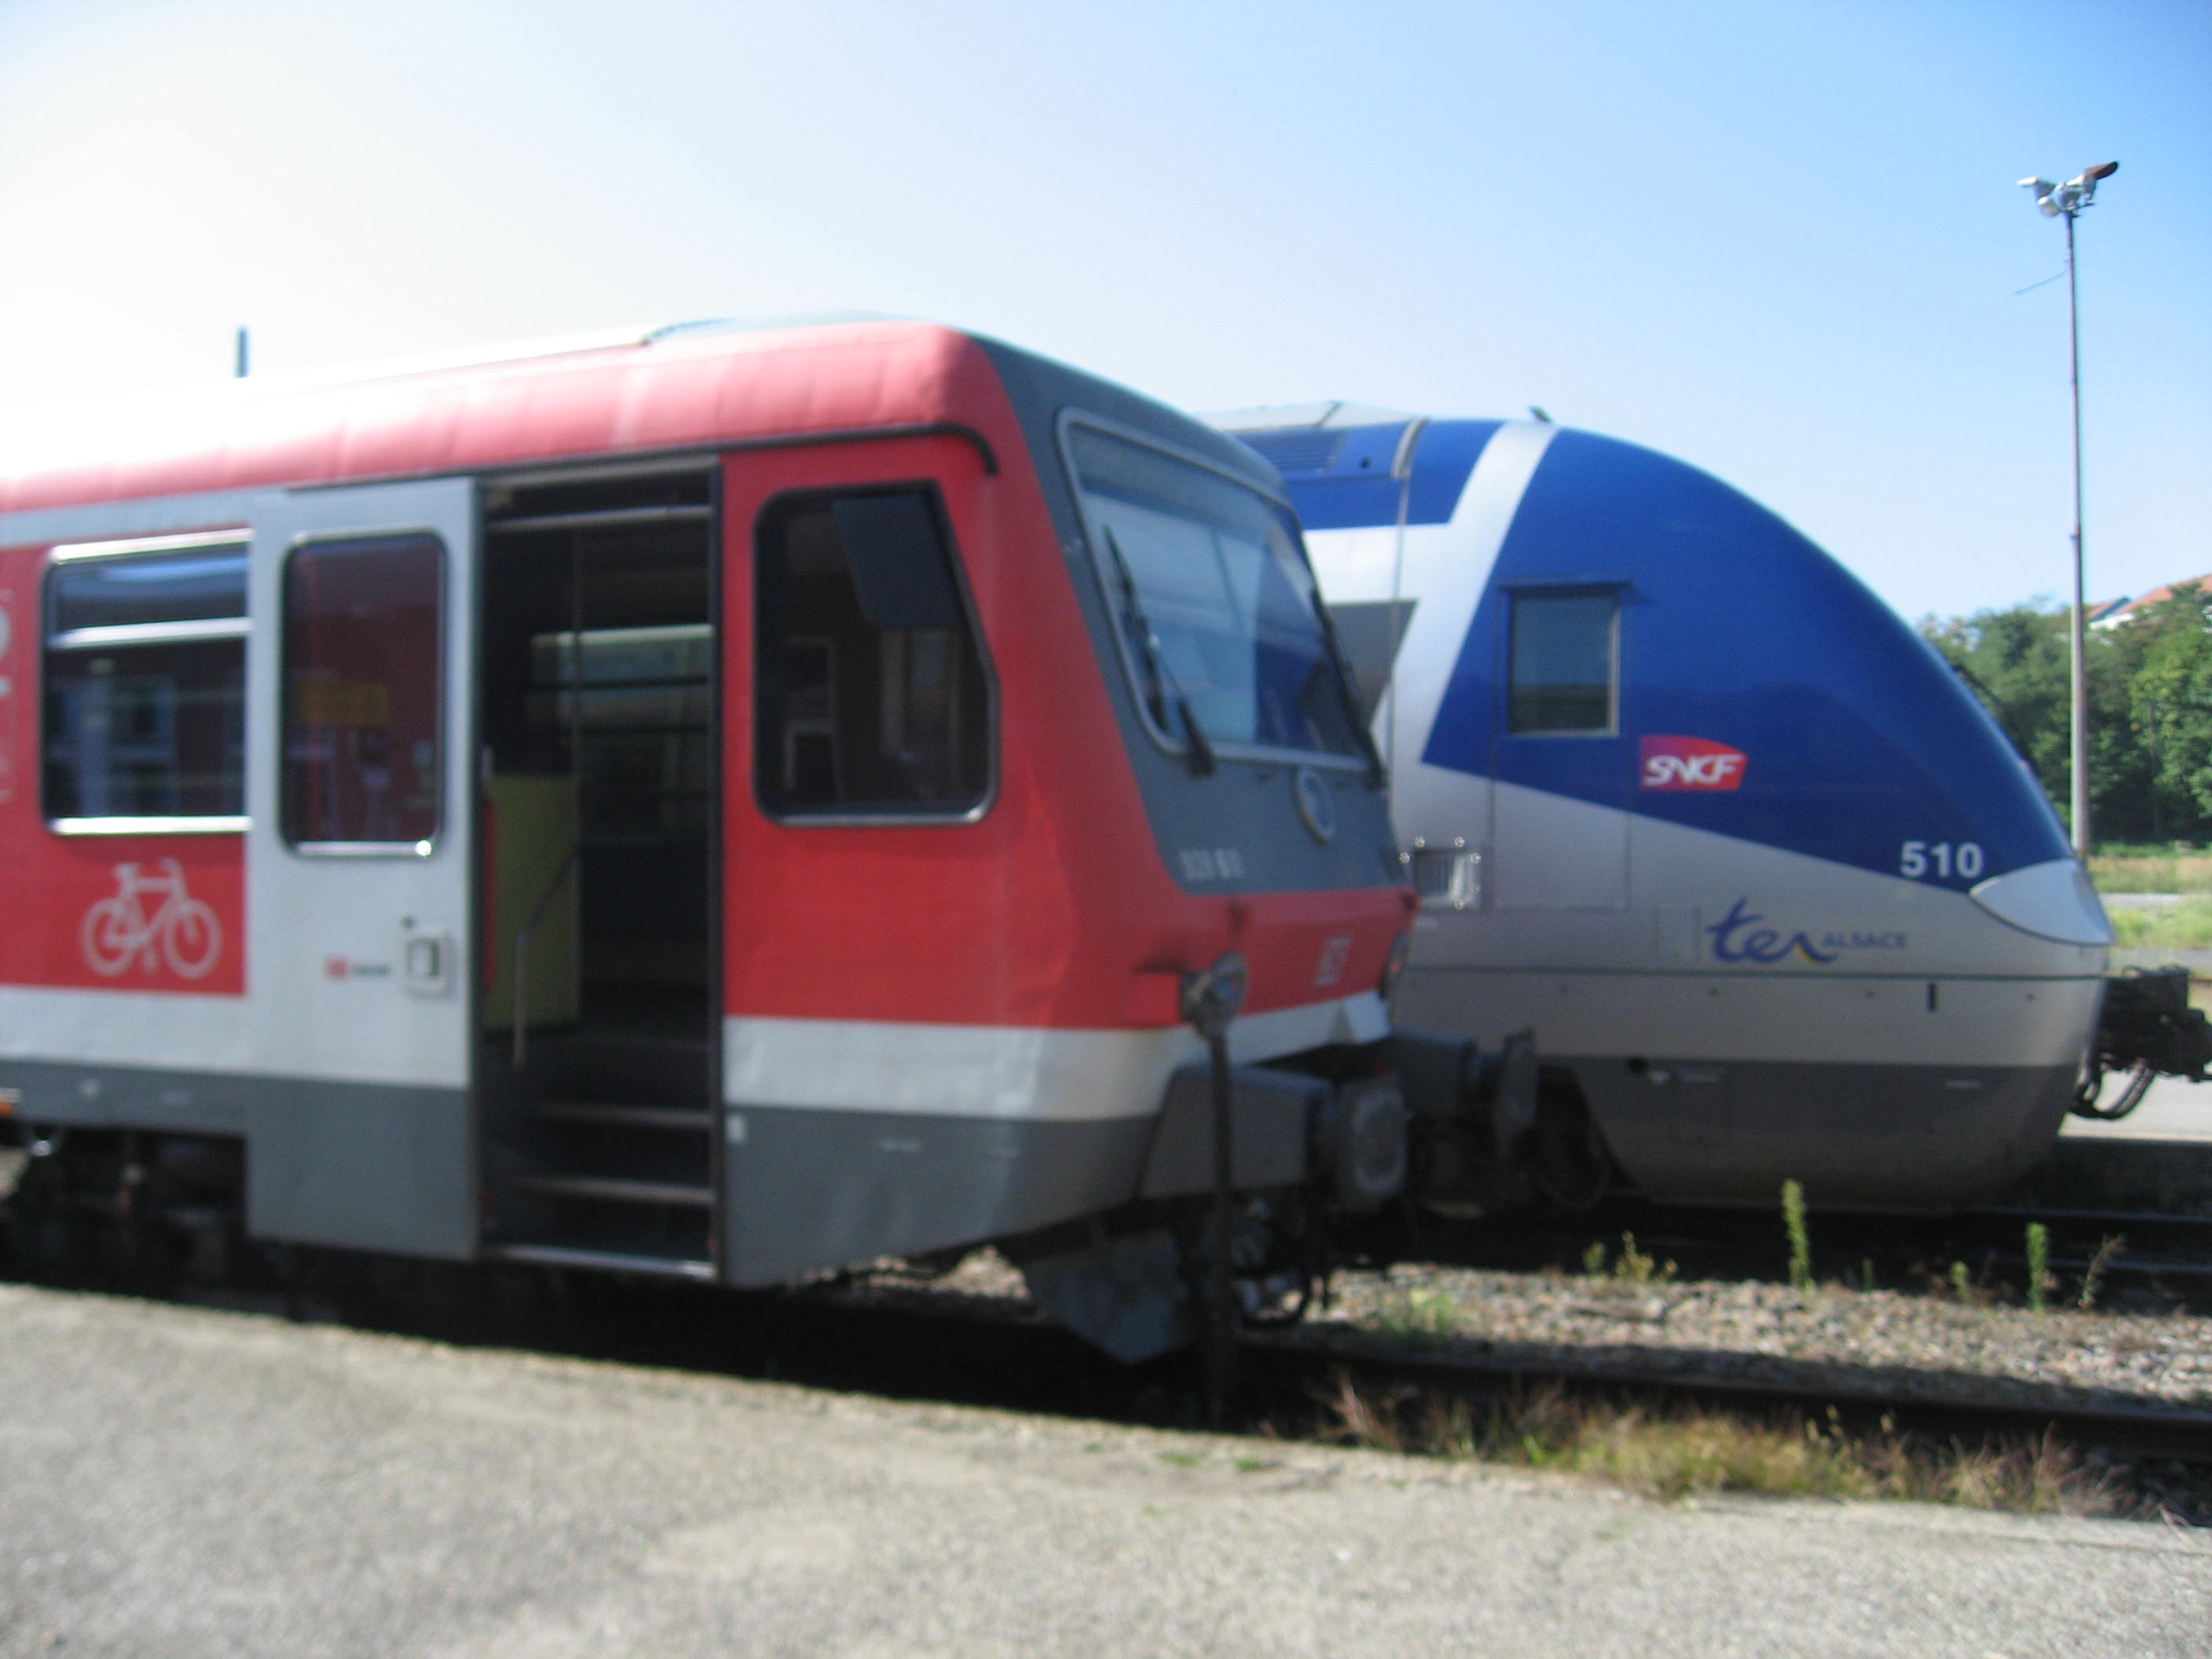 A to B France - DB Regio meets TER in Wissembourg